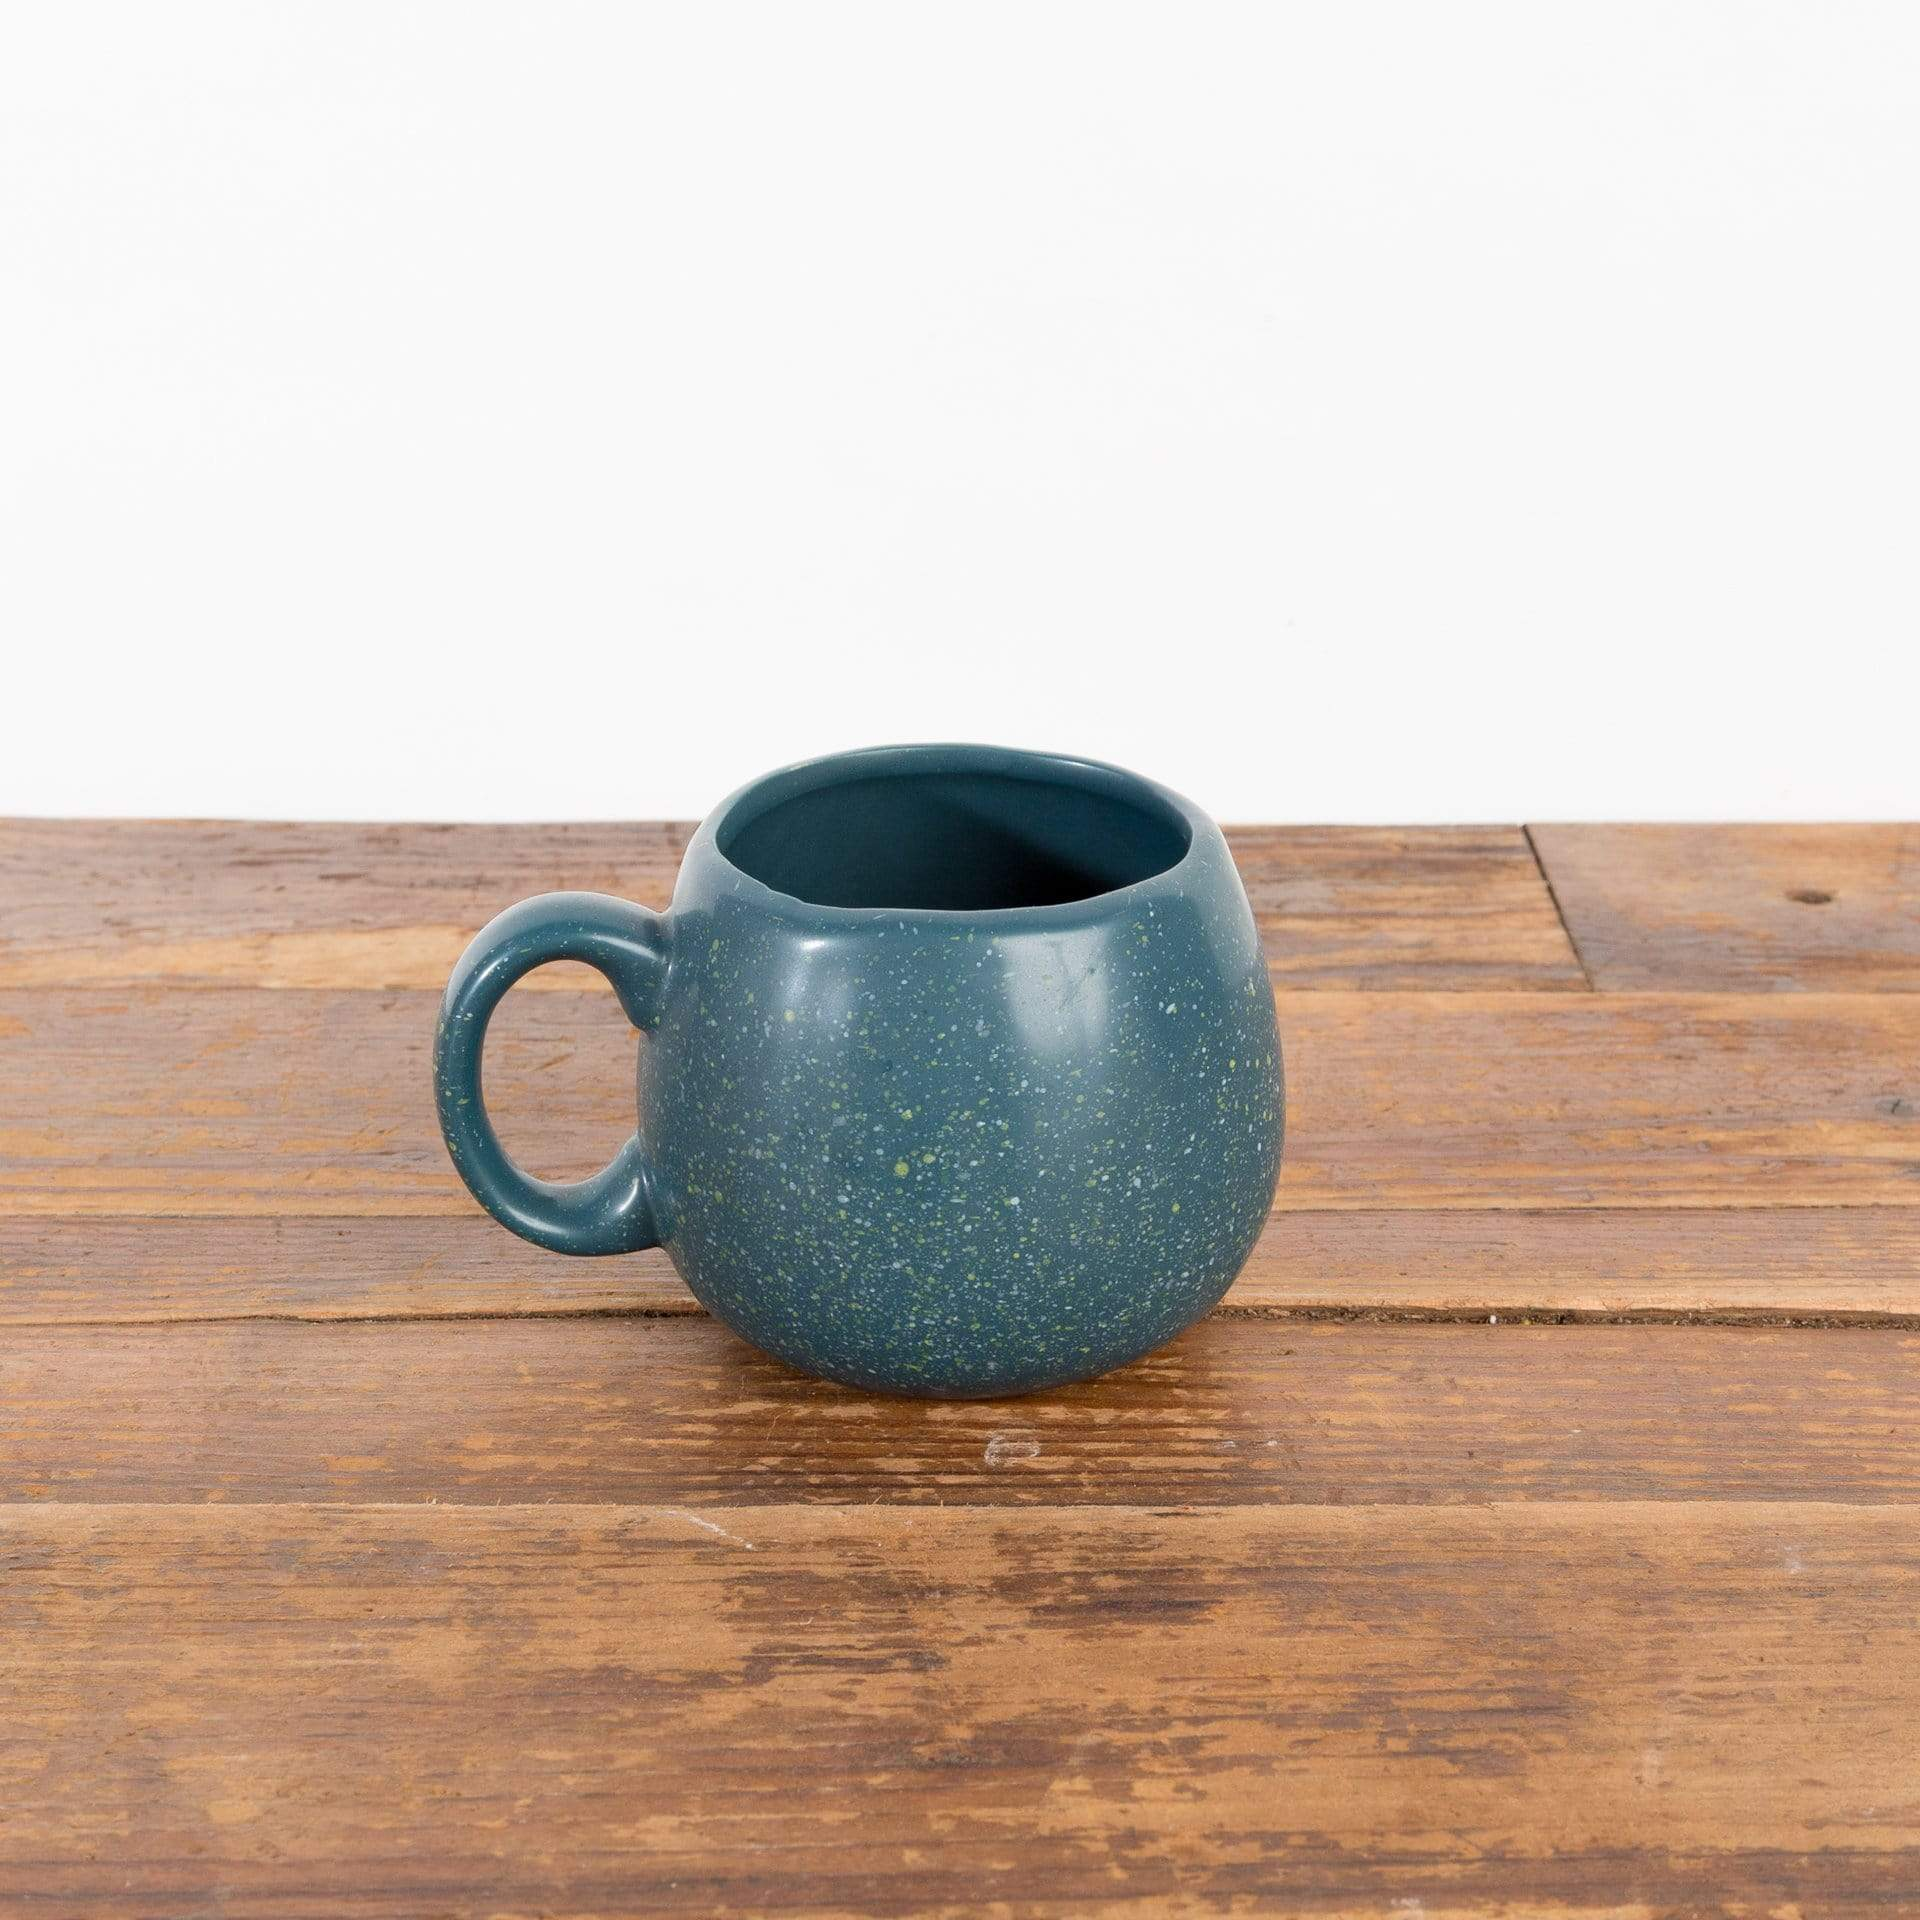 Navy Speckled Mug Planter - Urban Sprouts